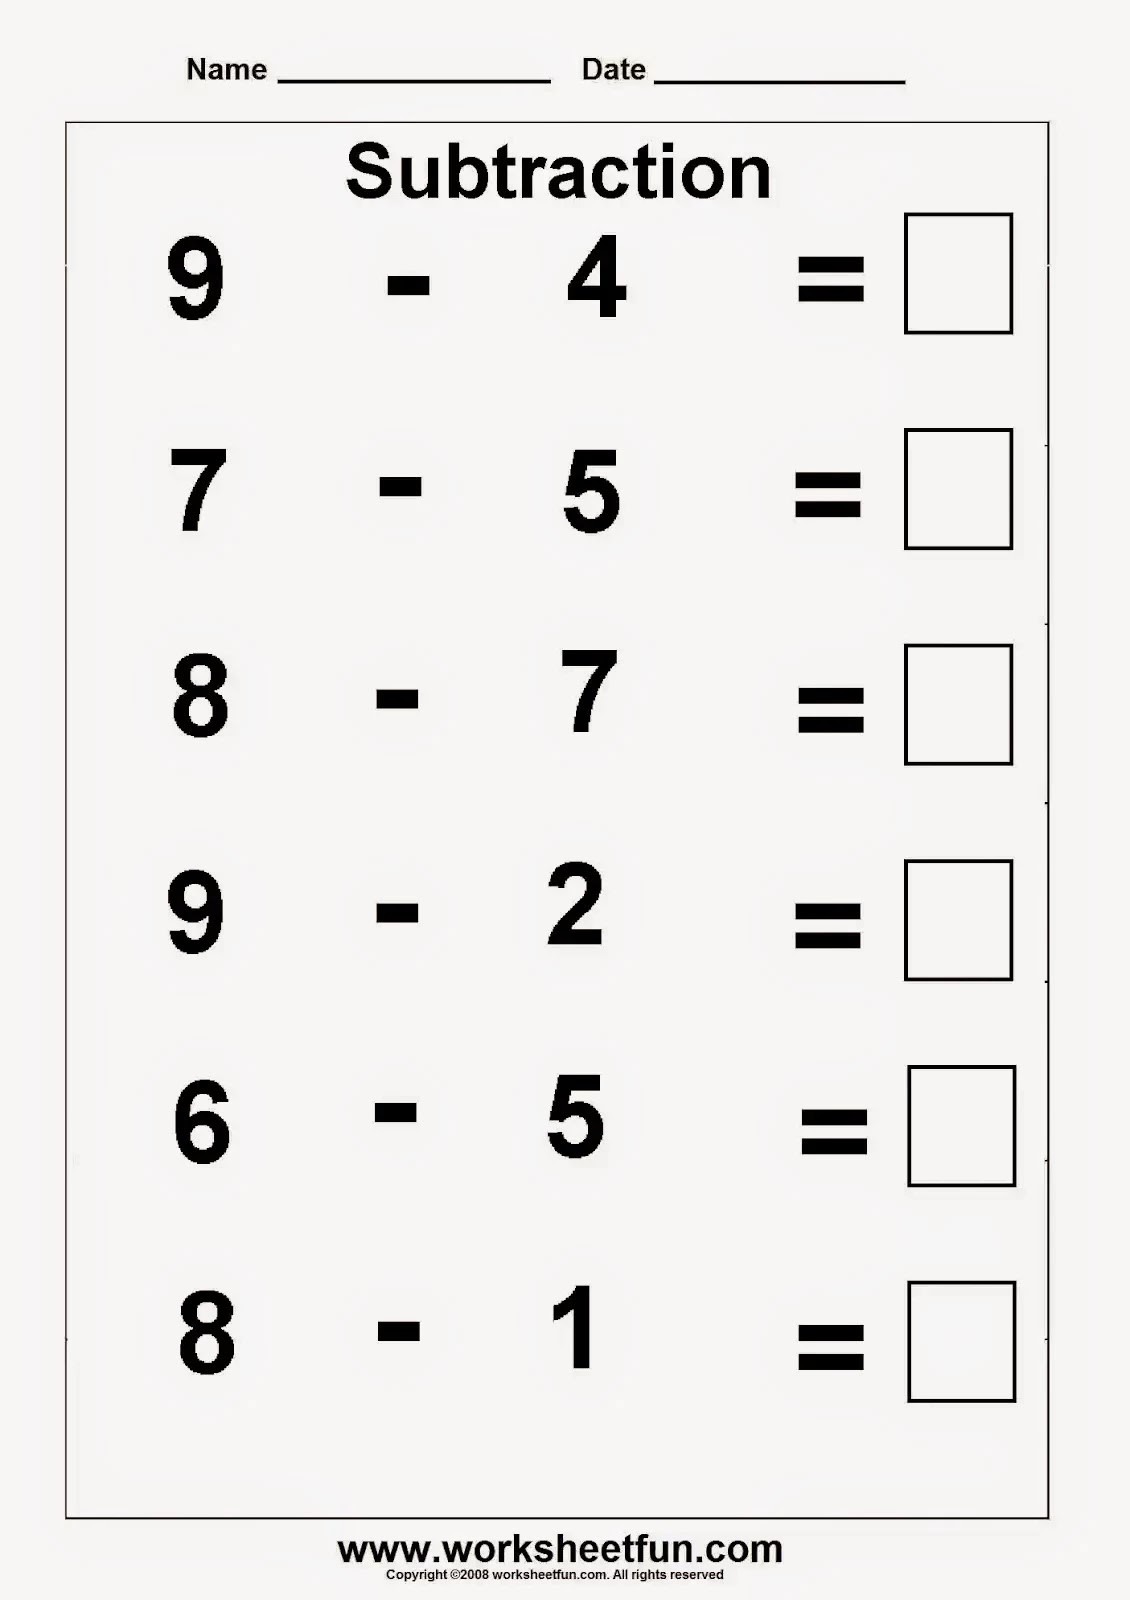 Addition and subtraction worksheets kindergarten 2182965 - aks ...